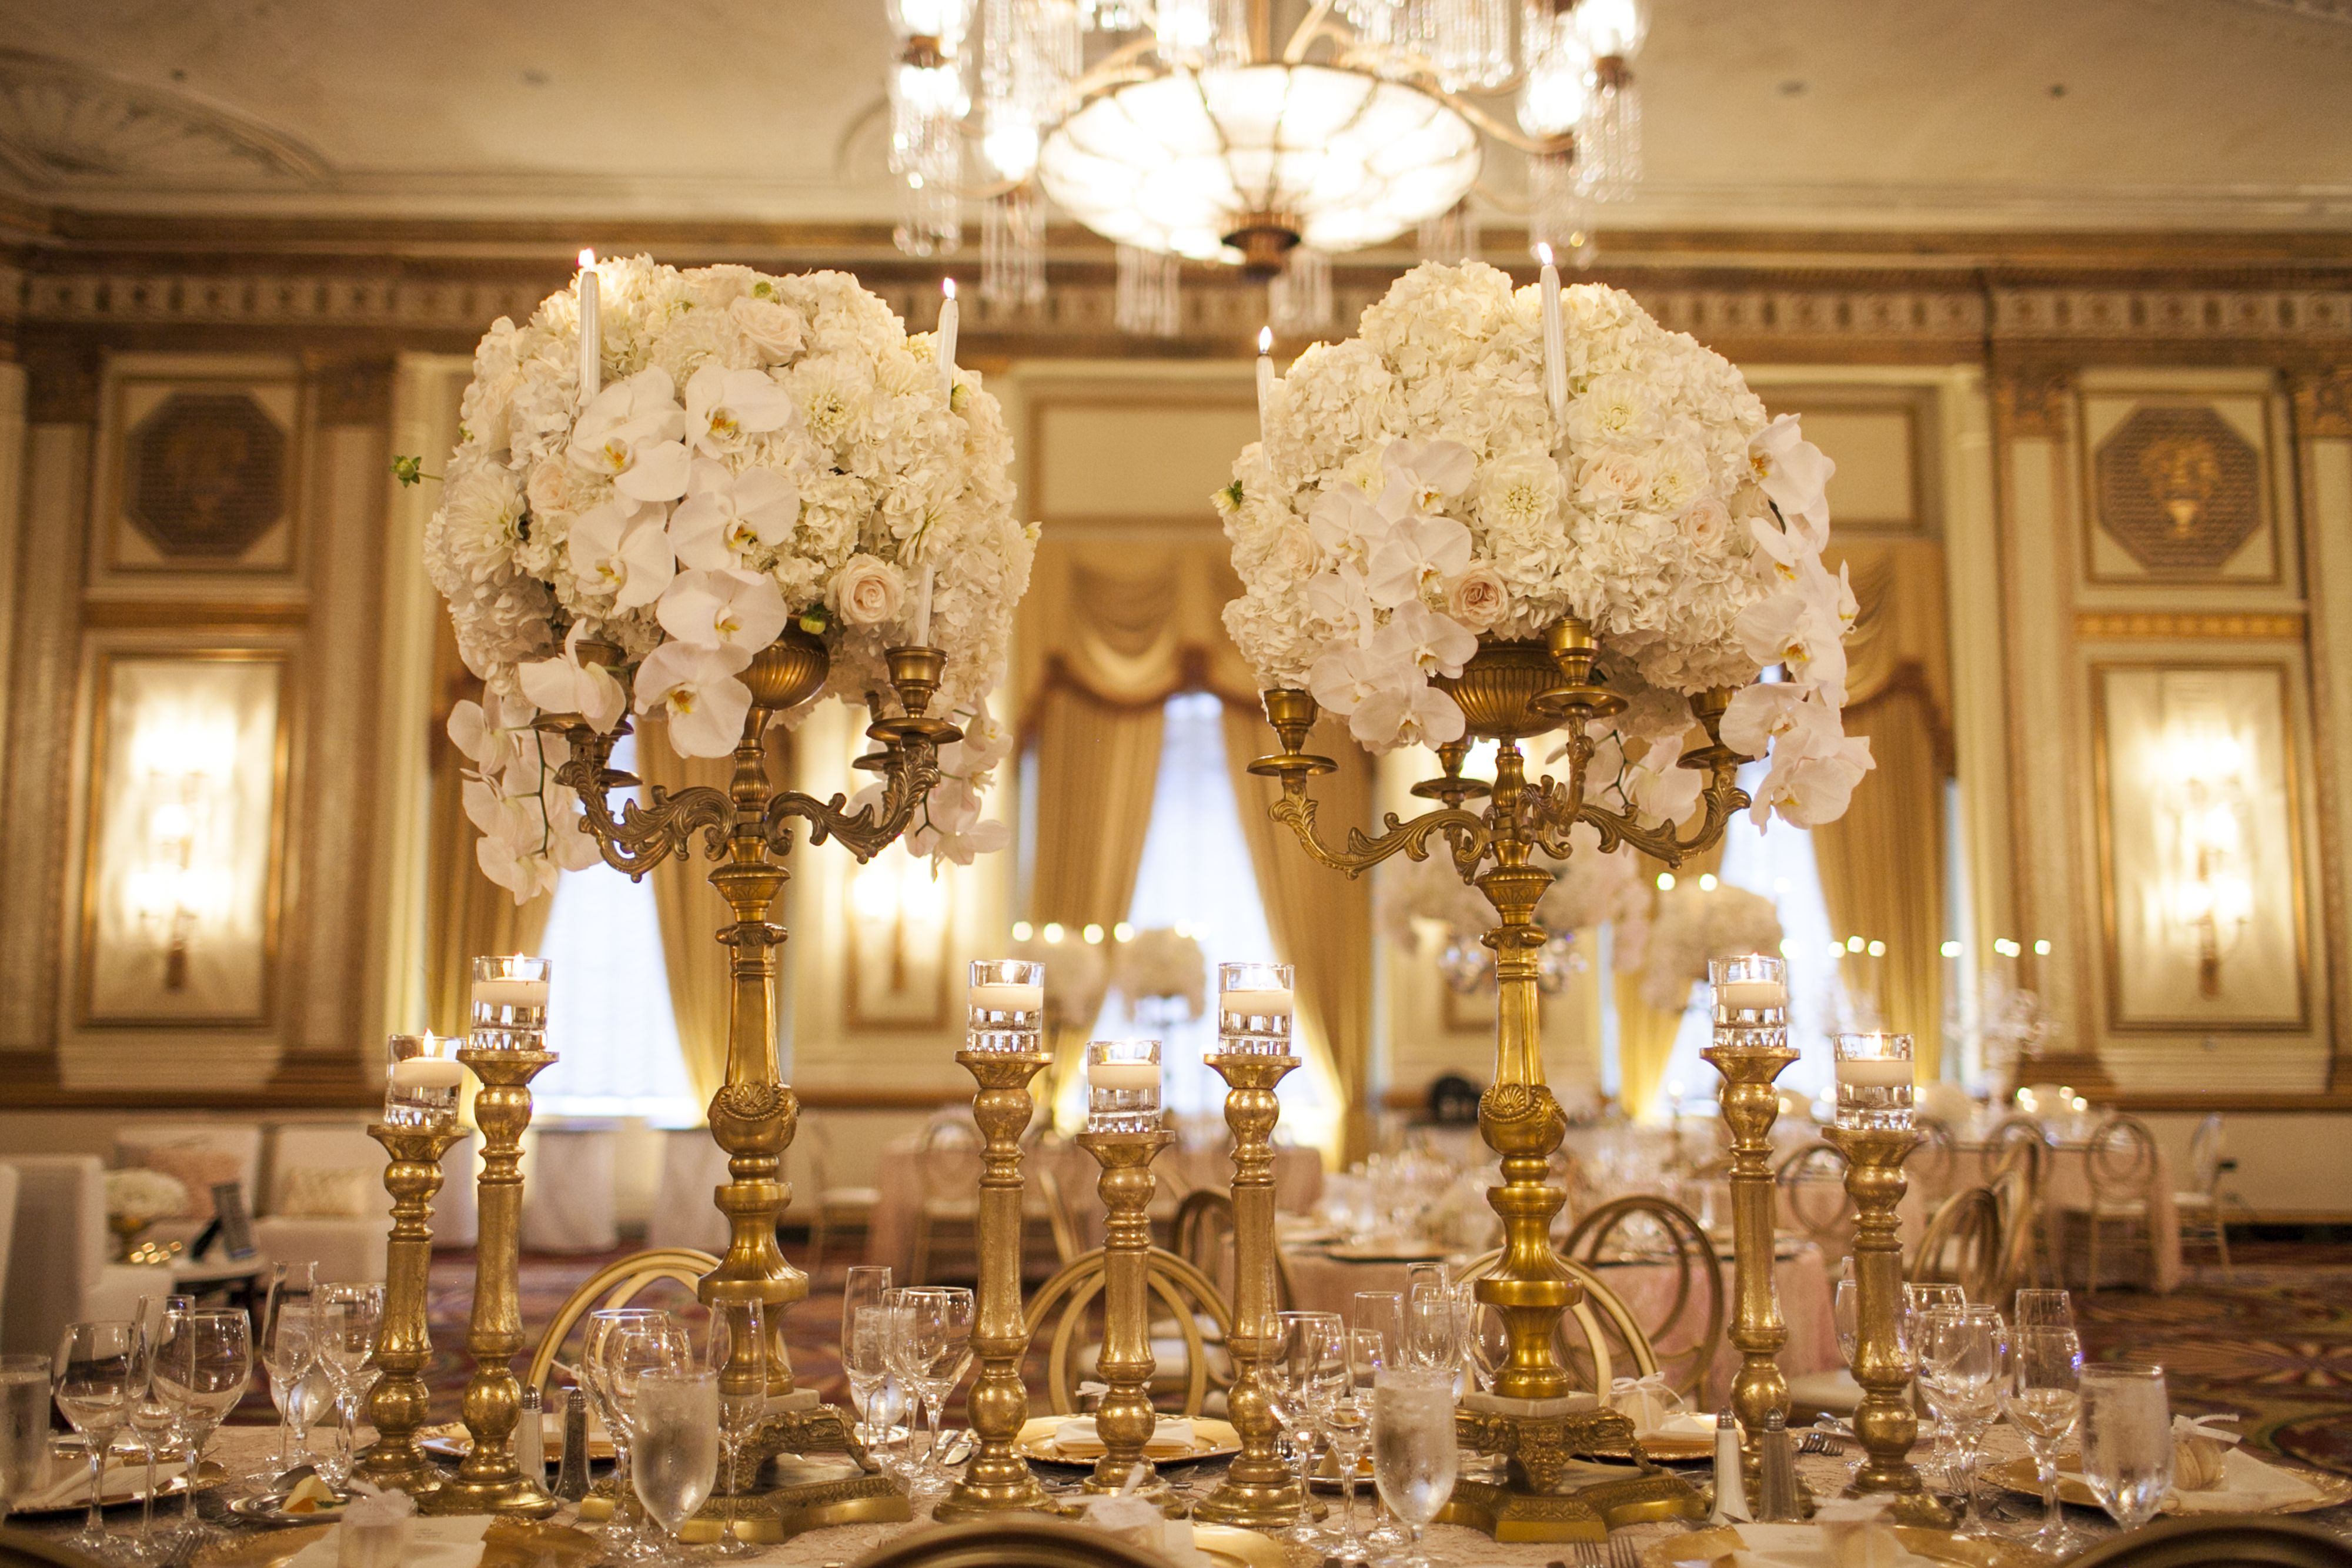 Pin by Jelly Belly on Wedding Venues | Tall wedding ...